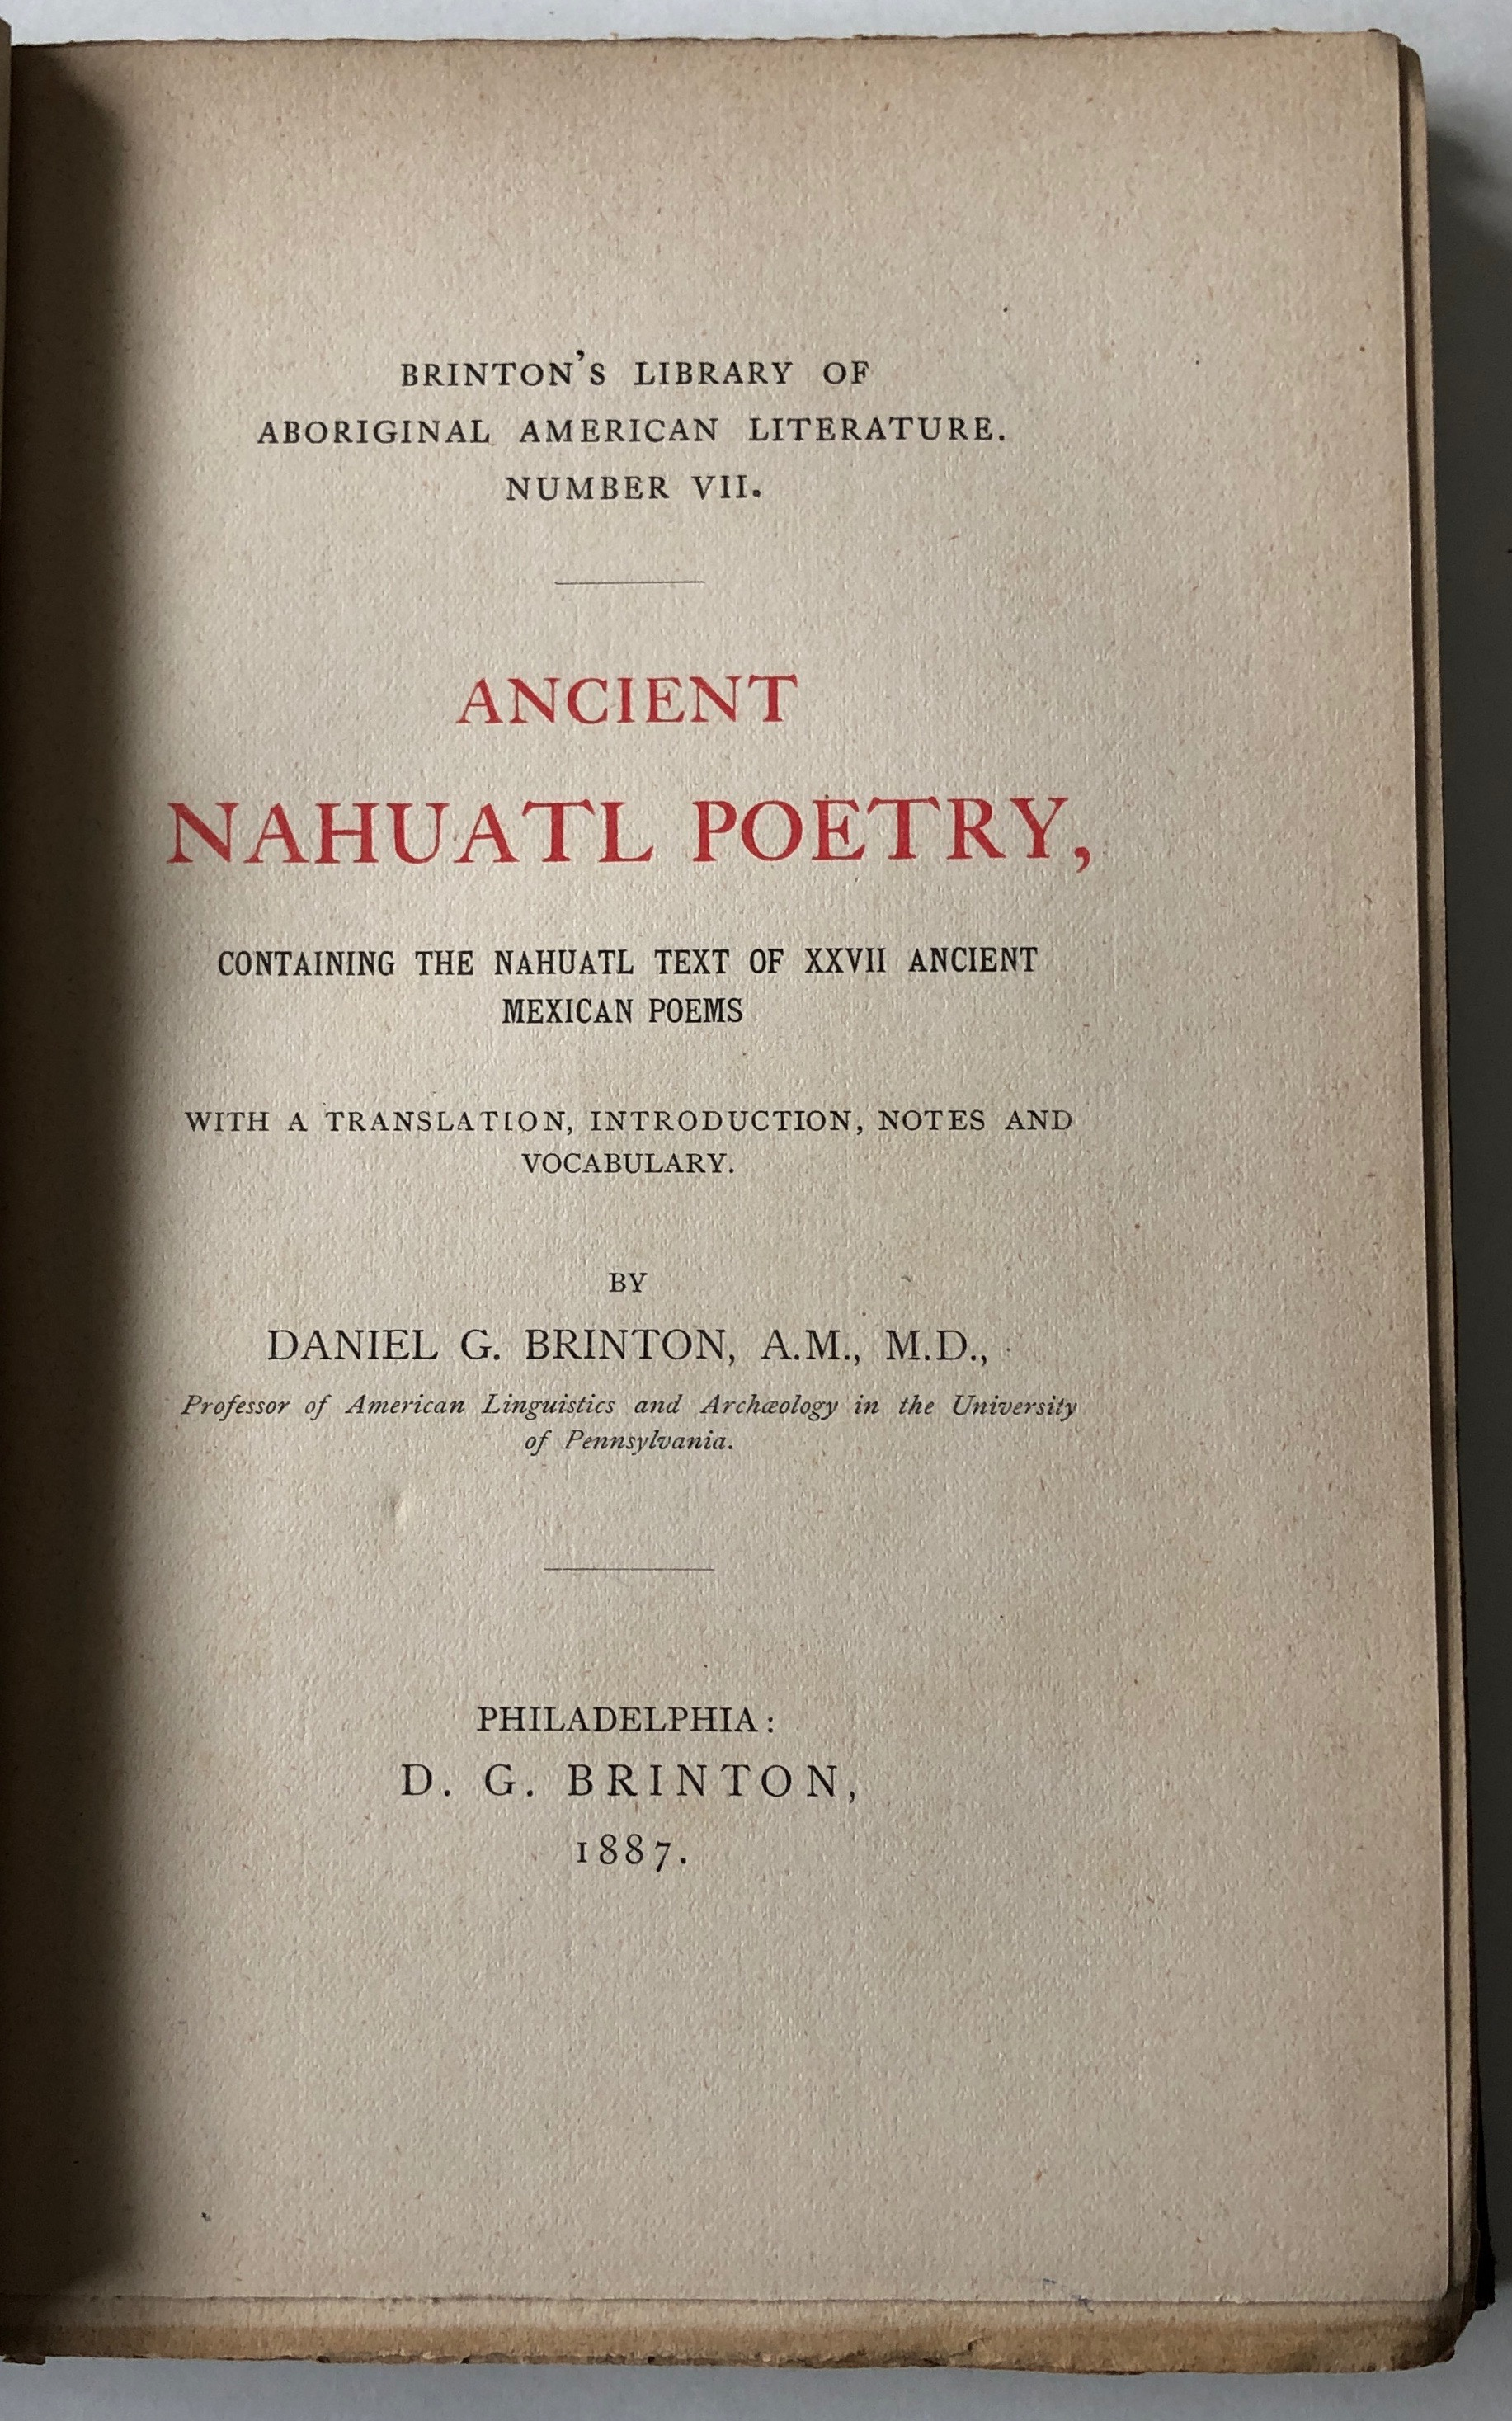 Ancient Nahuatl Poetry, Containing the Nahuatl Text of XXVII Ancient Mexican Poems With a Translation, Introduction, Notes and Vocabulary.